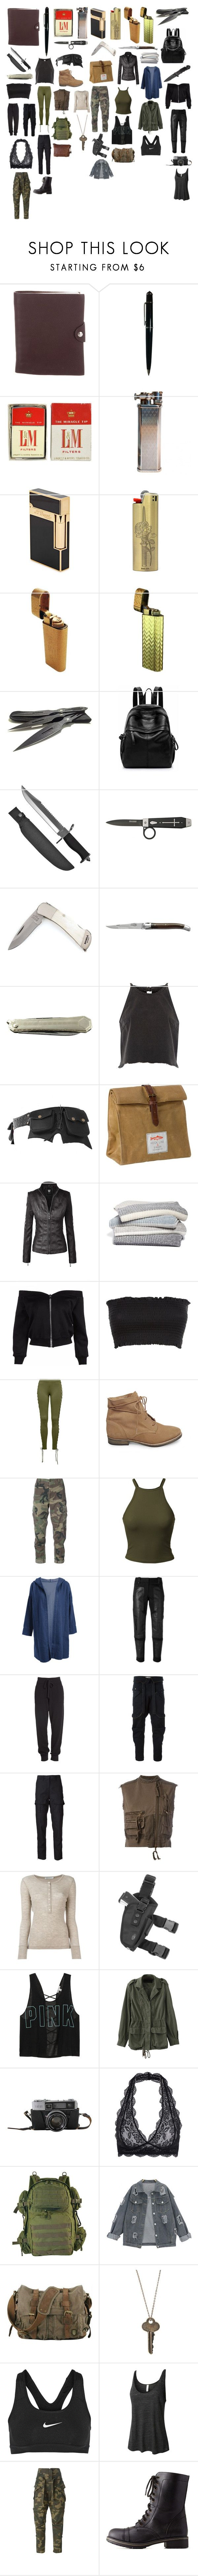 """""""Eh kind zero repeat forever"""" by skymothompson ❤ liked on Polyvore featuring Hermès, Cartier, S.T. Dupont, Whetstone Cutlery, Forge de Laguiole, River Island, Wild & Wolf, Barefoot Dreams, Puma and Steve Madden"""